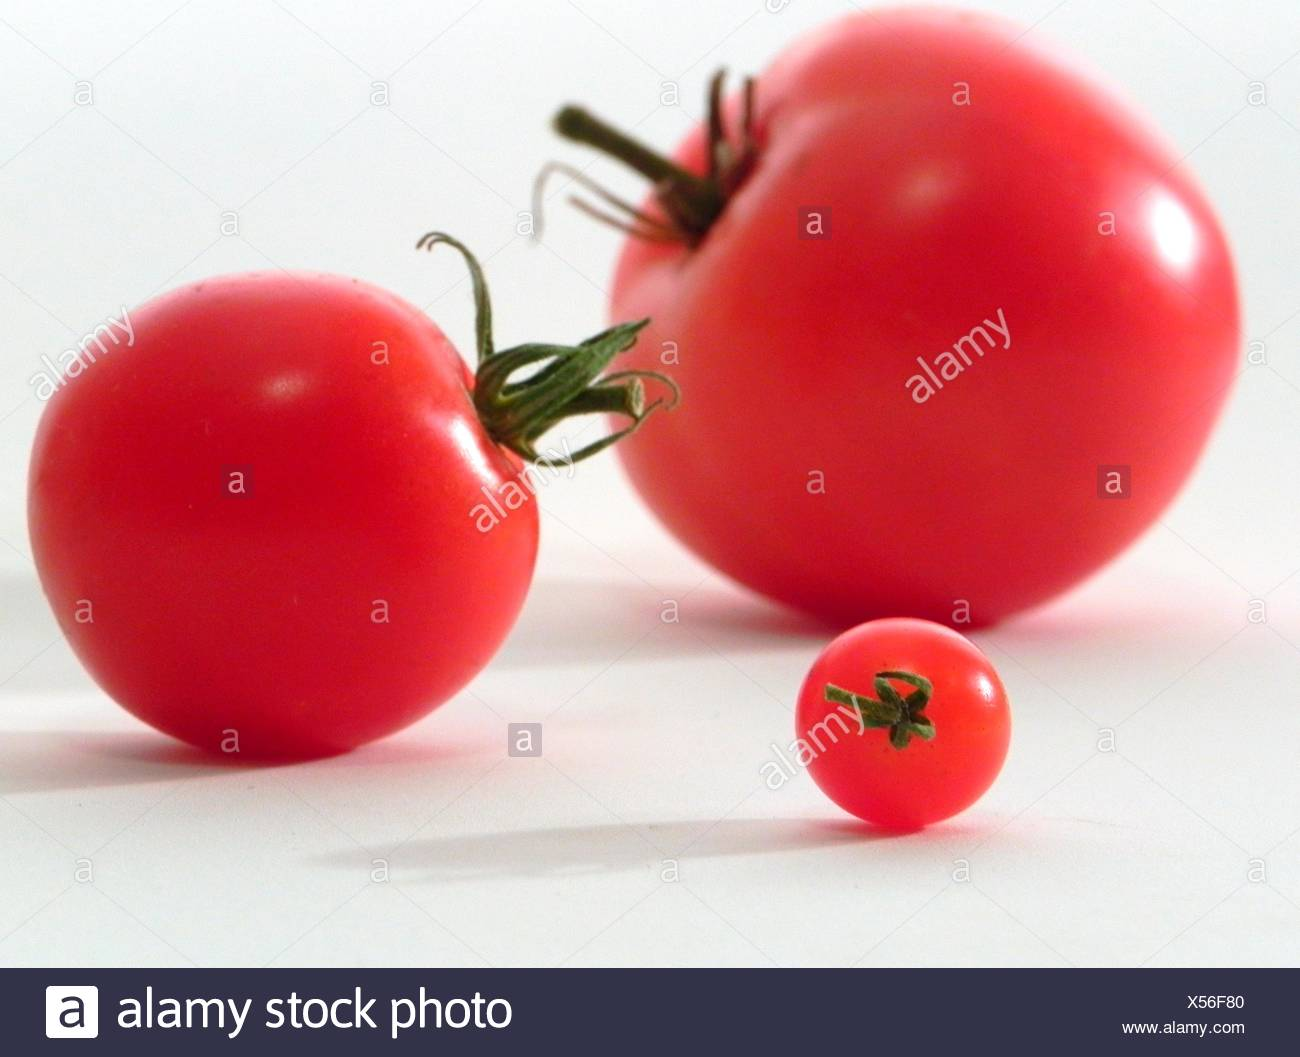 Three Ripe Red Heirloom Tomatoes In Three Sizes Currant Cherry